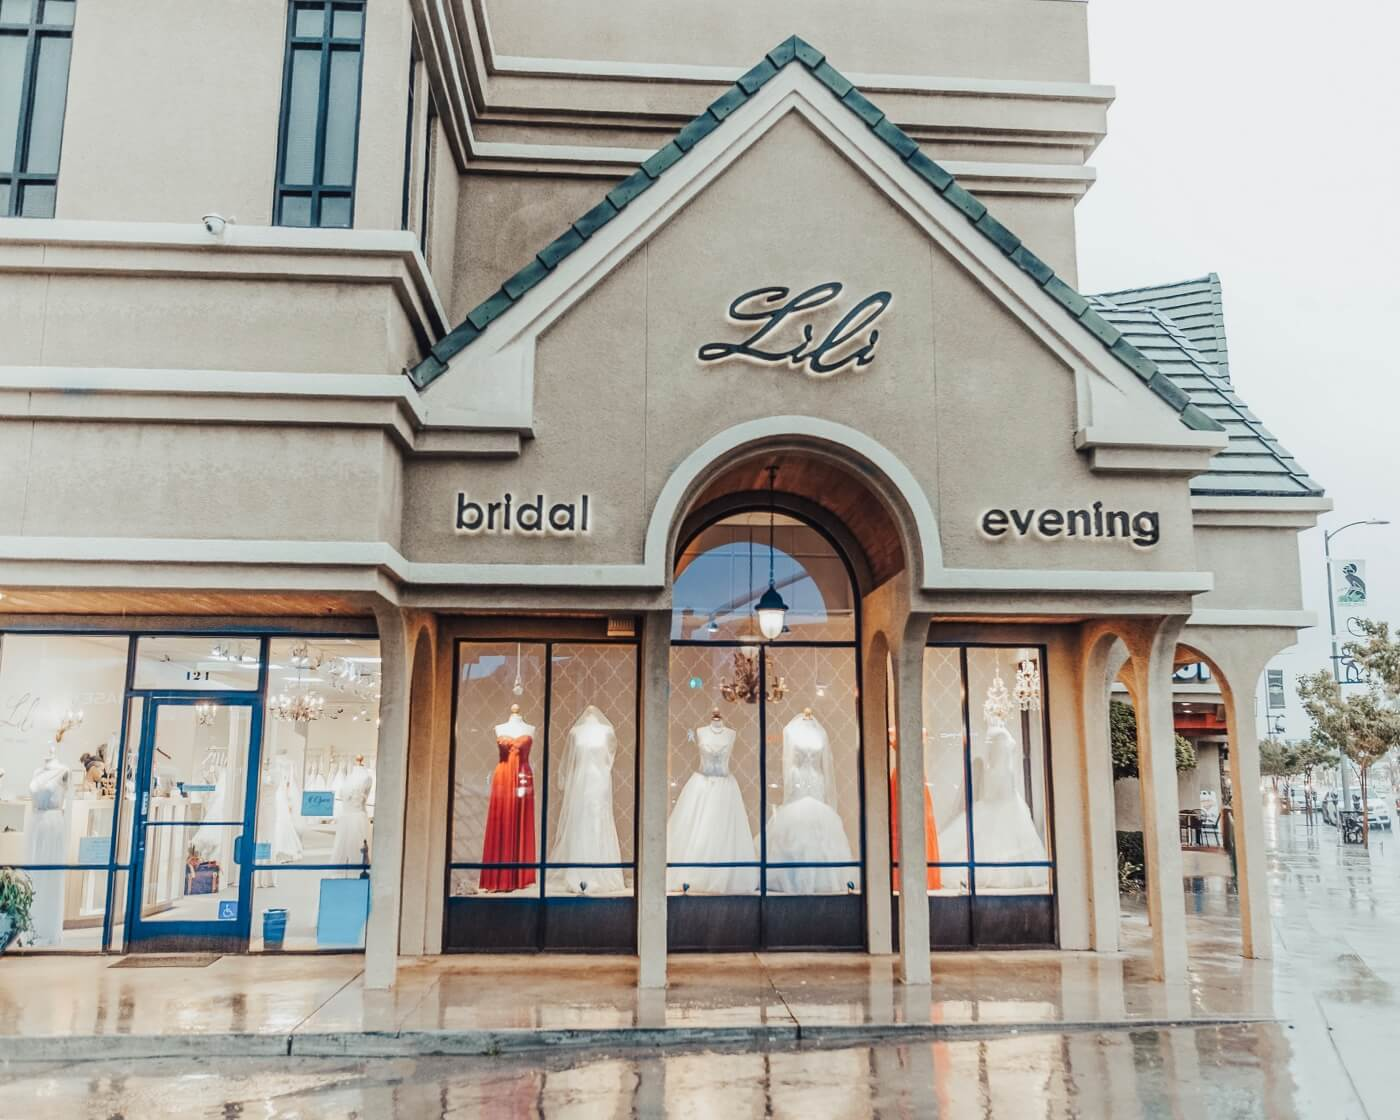 Image of Lili Bridal store